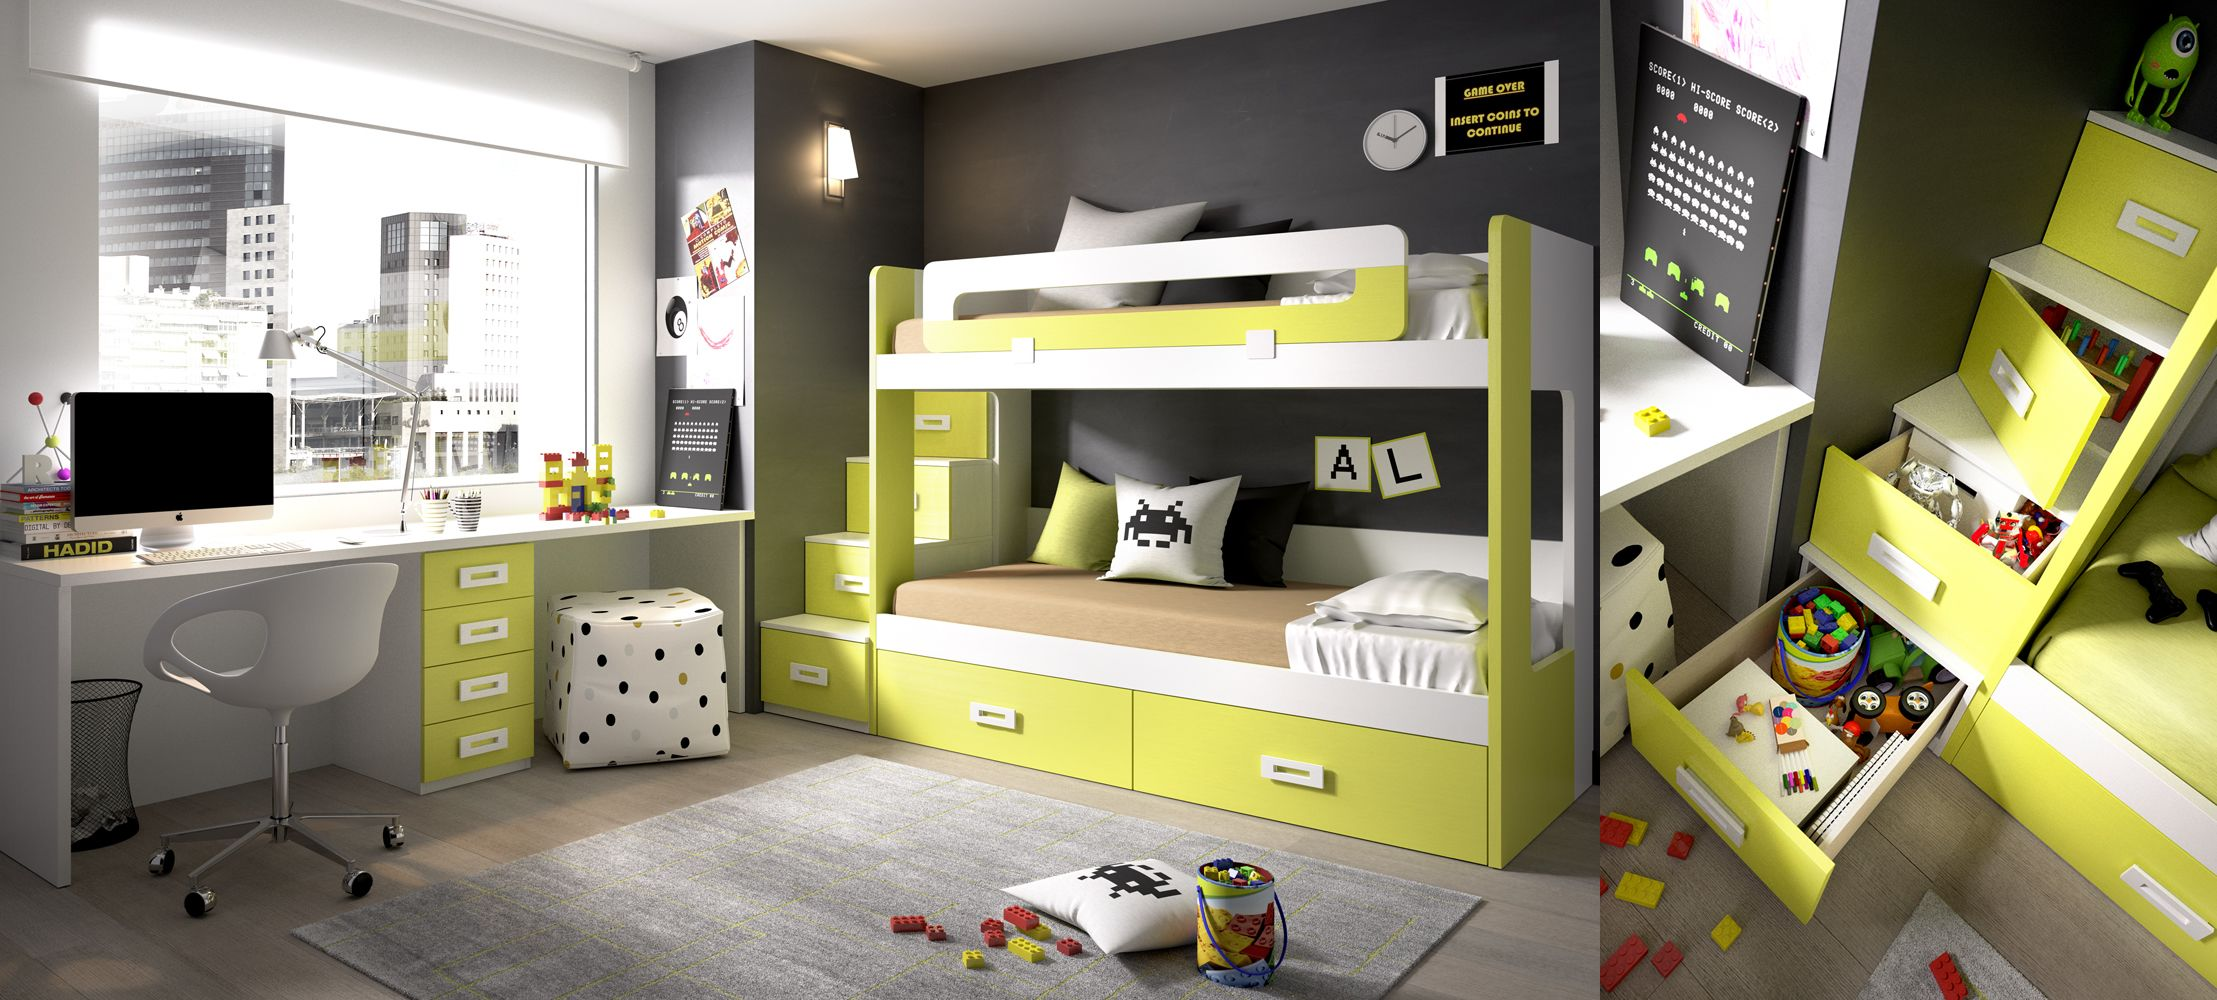 Extra Storage Kids Bedroom Set From Rimobel Furniture Spain With